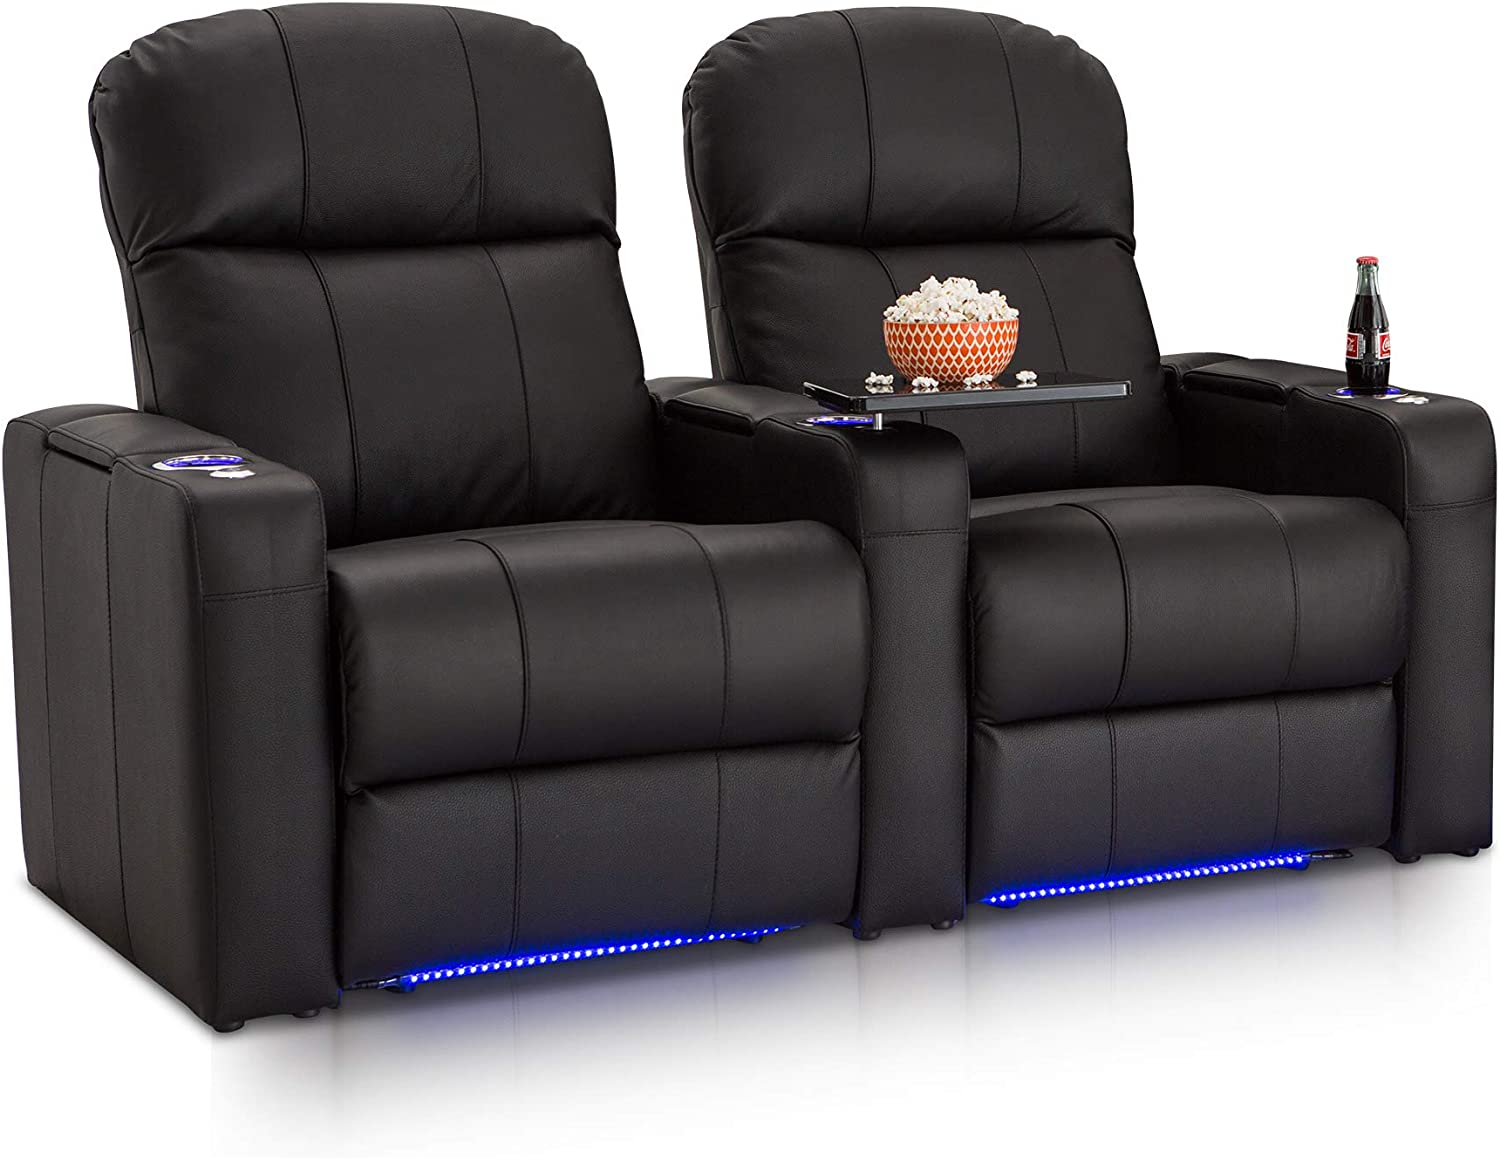 Seatcraft Venetian Black Bonded Leather Home Theater Seating – Row of 2 Seats – Manual Recline